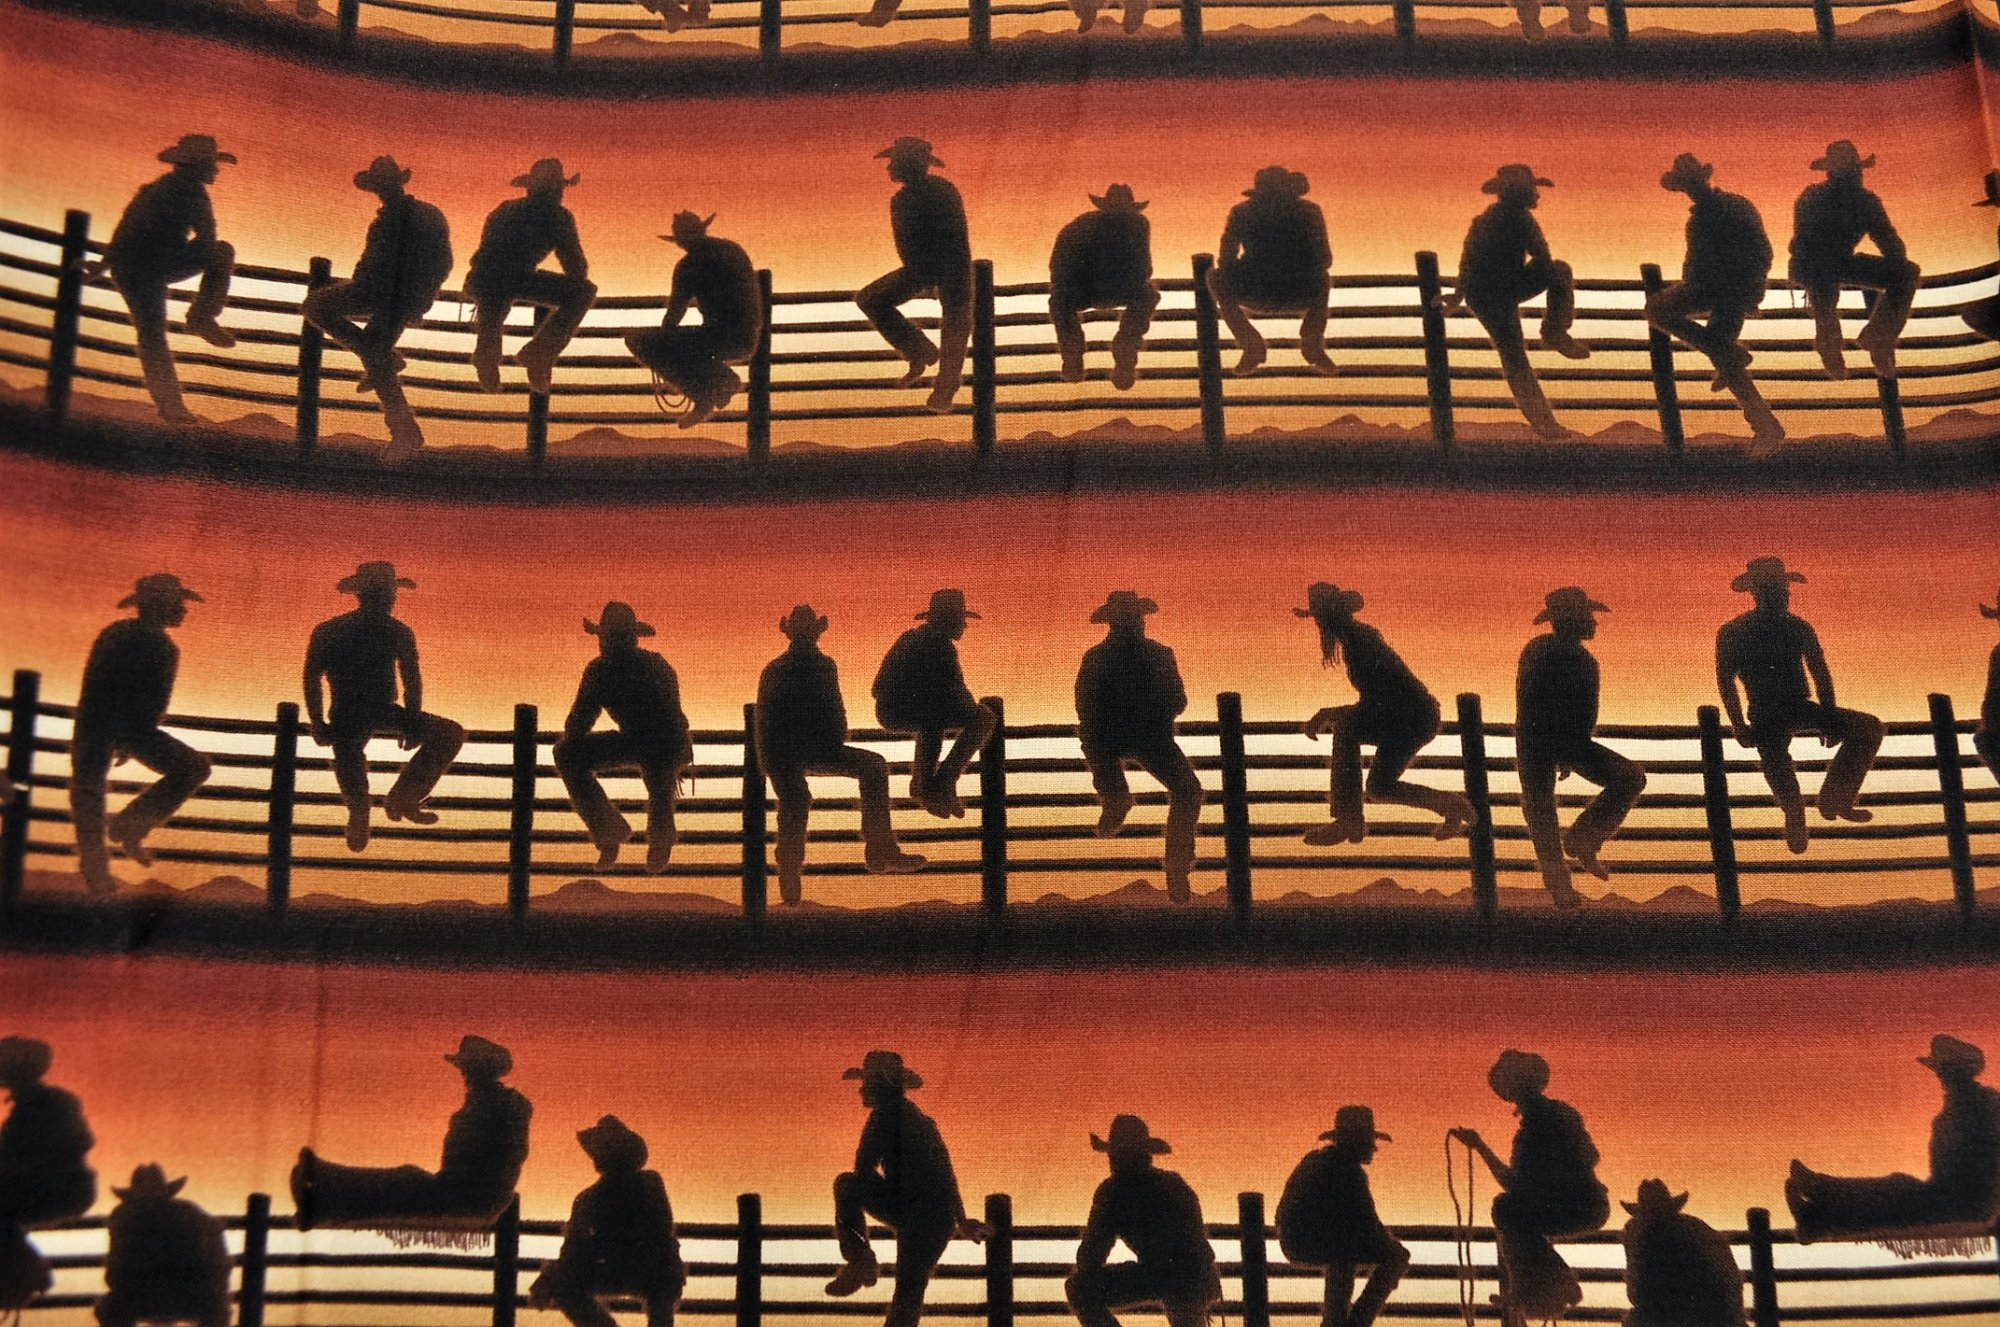 Best of the West Cowboys on Fence Sunset